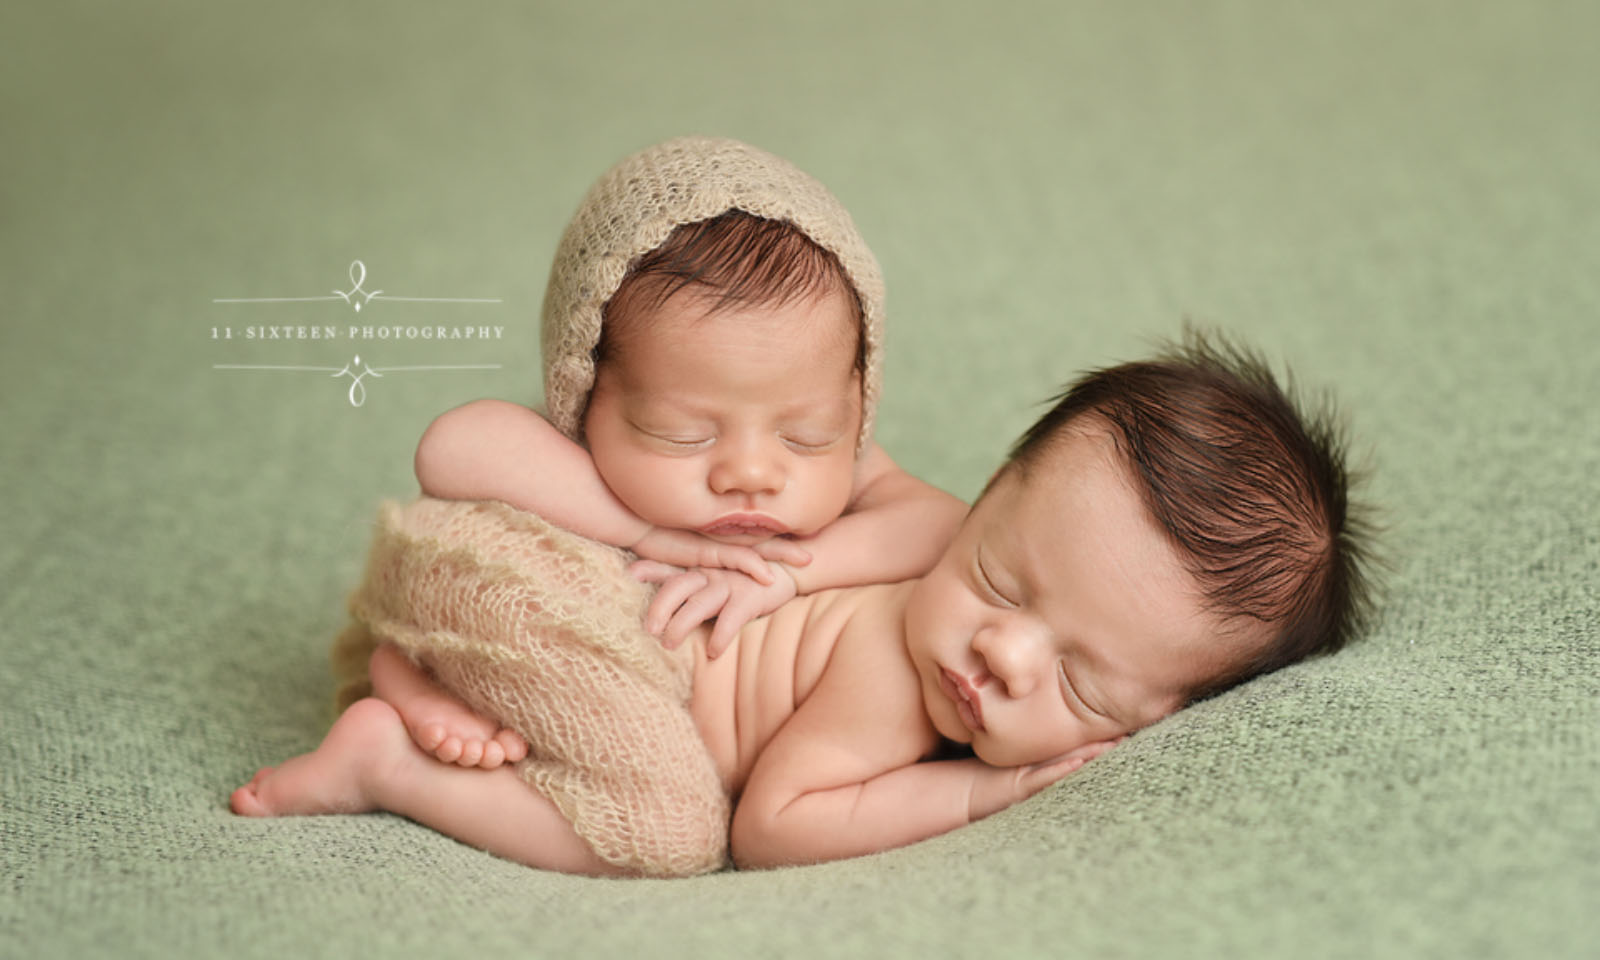 newborn twins portrait with Beautiful Photo Props copy